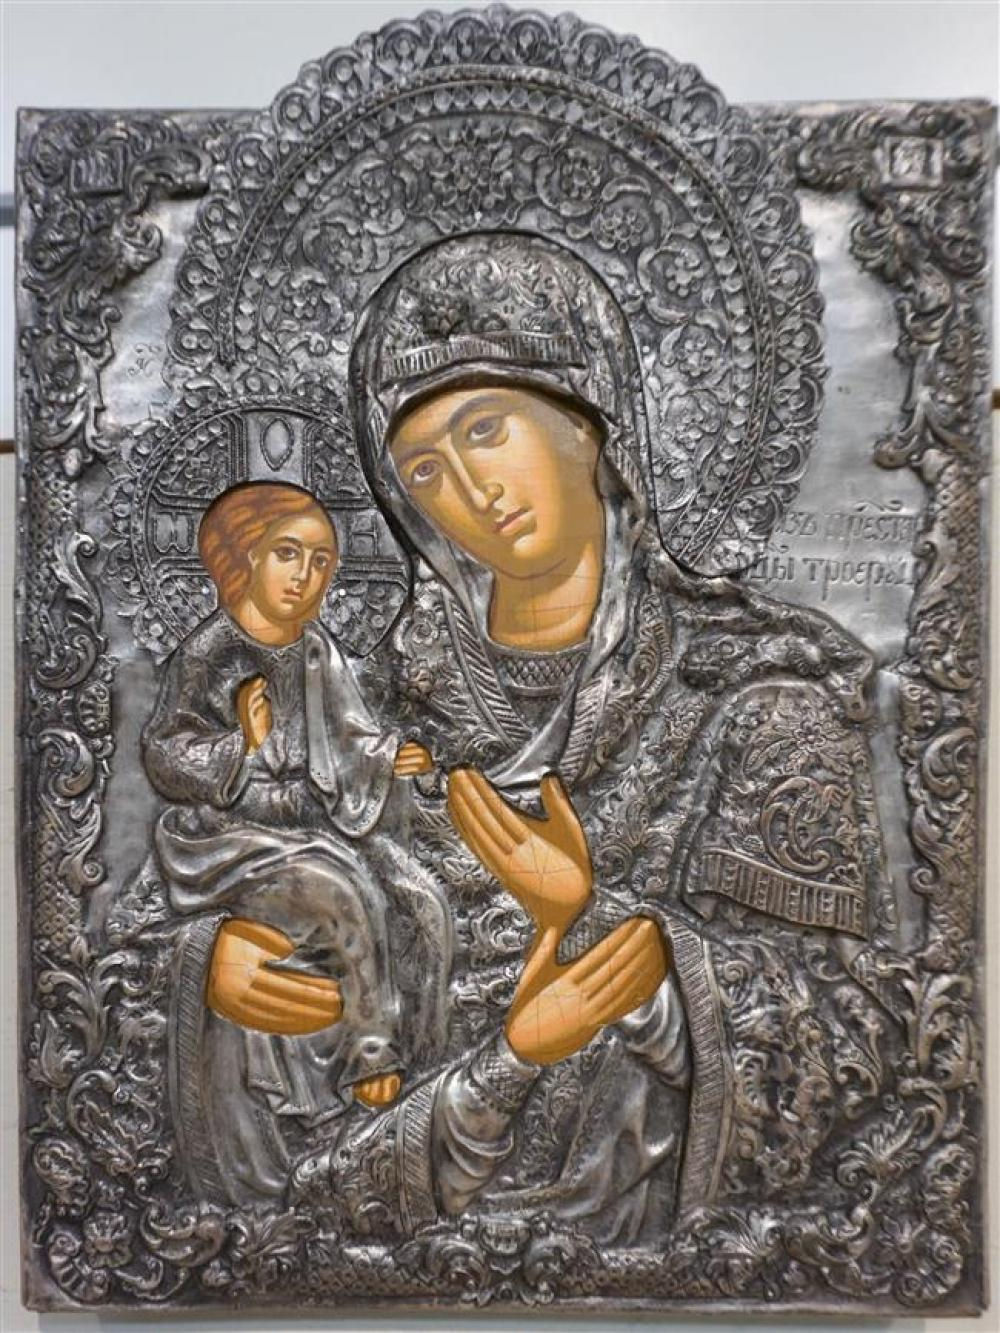 Printed Icon of Madonna and Child with Metal Oklad; Overall 12.75 x 9.75 Inches